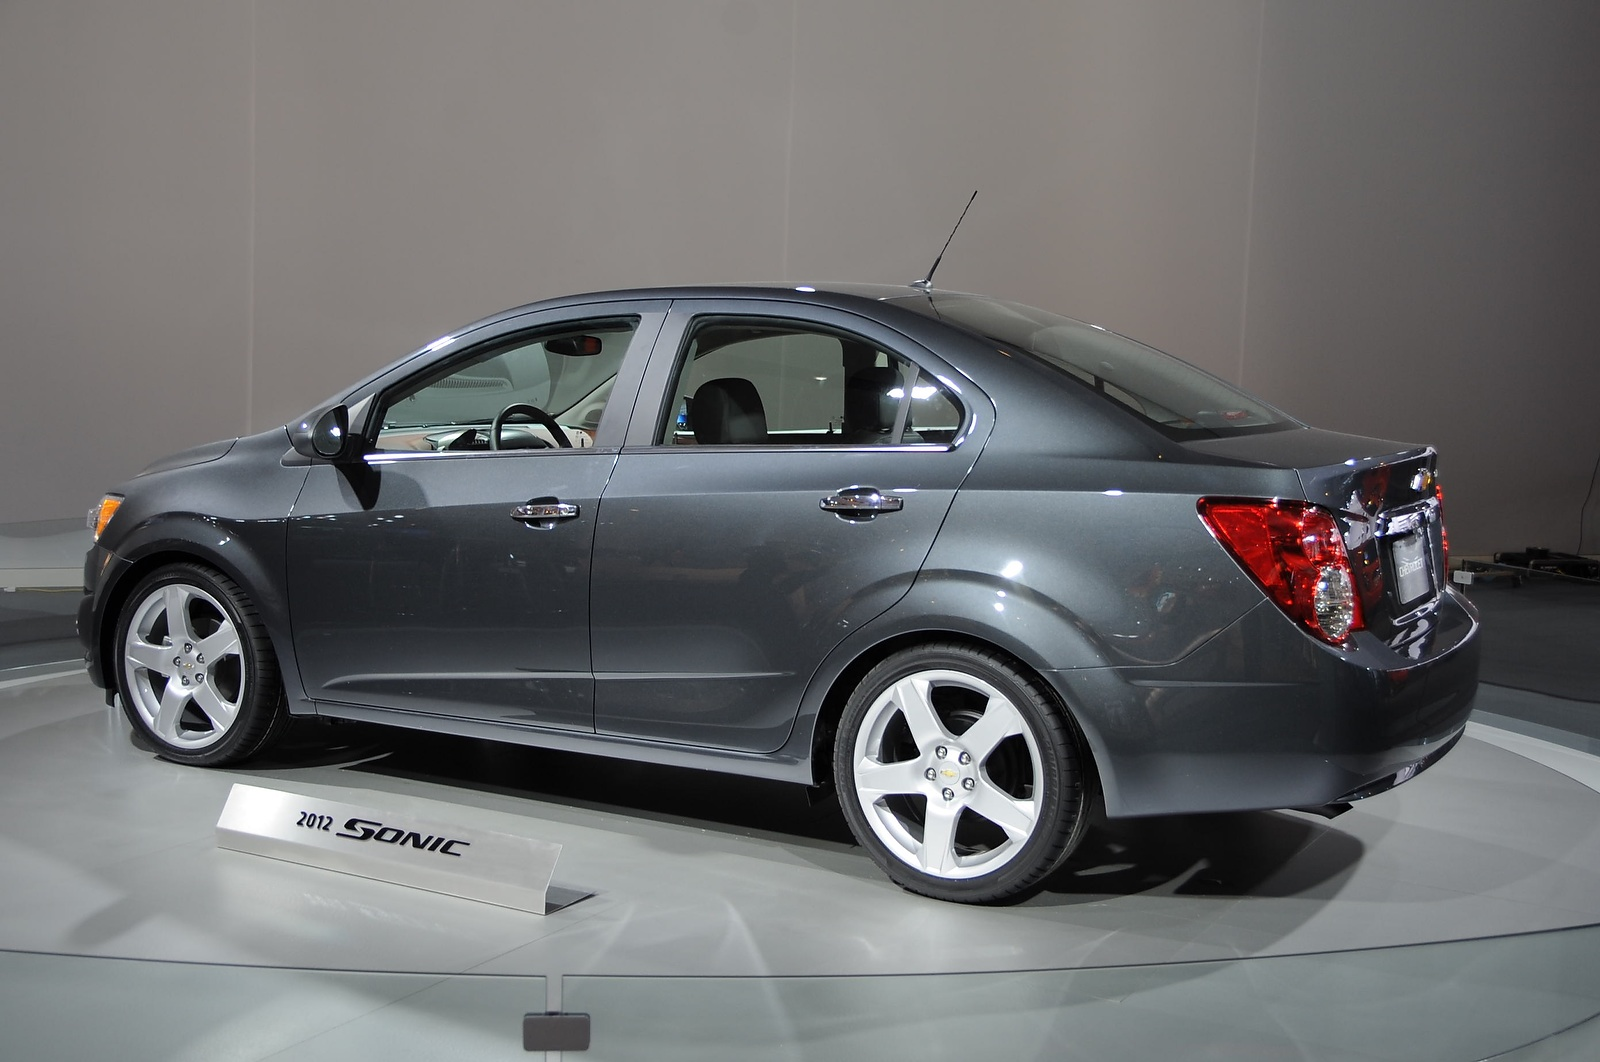 new small cars 2012 chevy sonic nissan versa hyundai. Black Bedroom Furniture Sets. Home Design Ideas